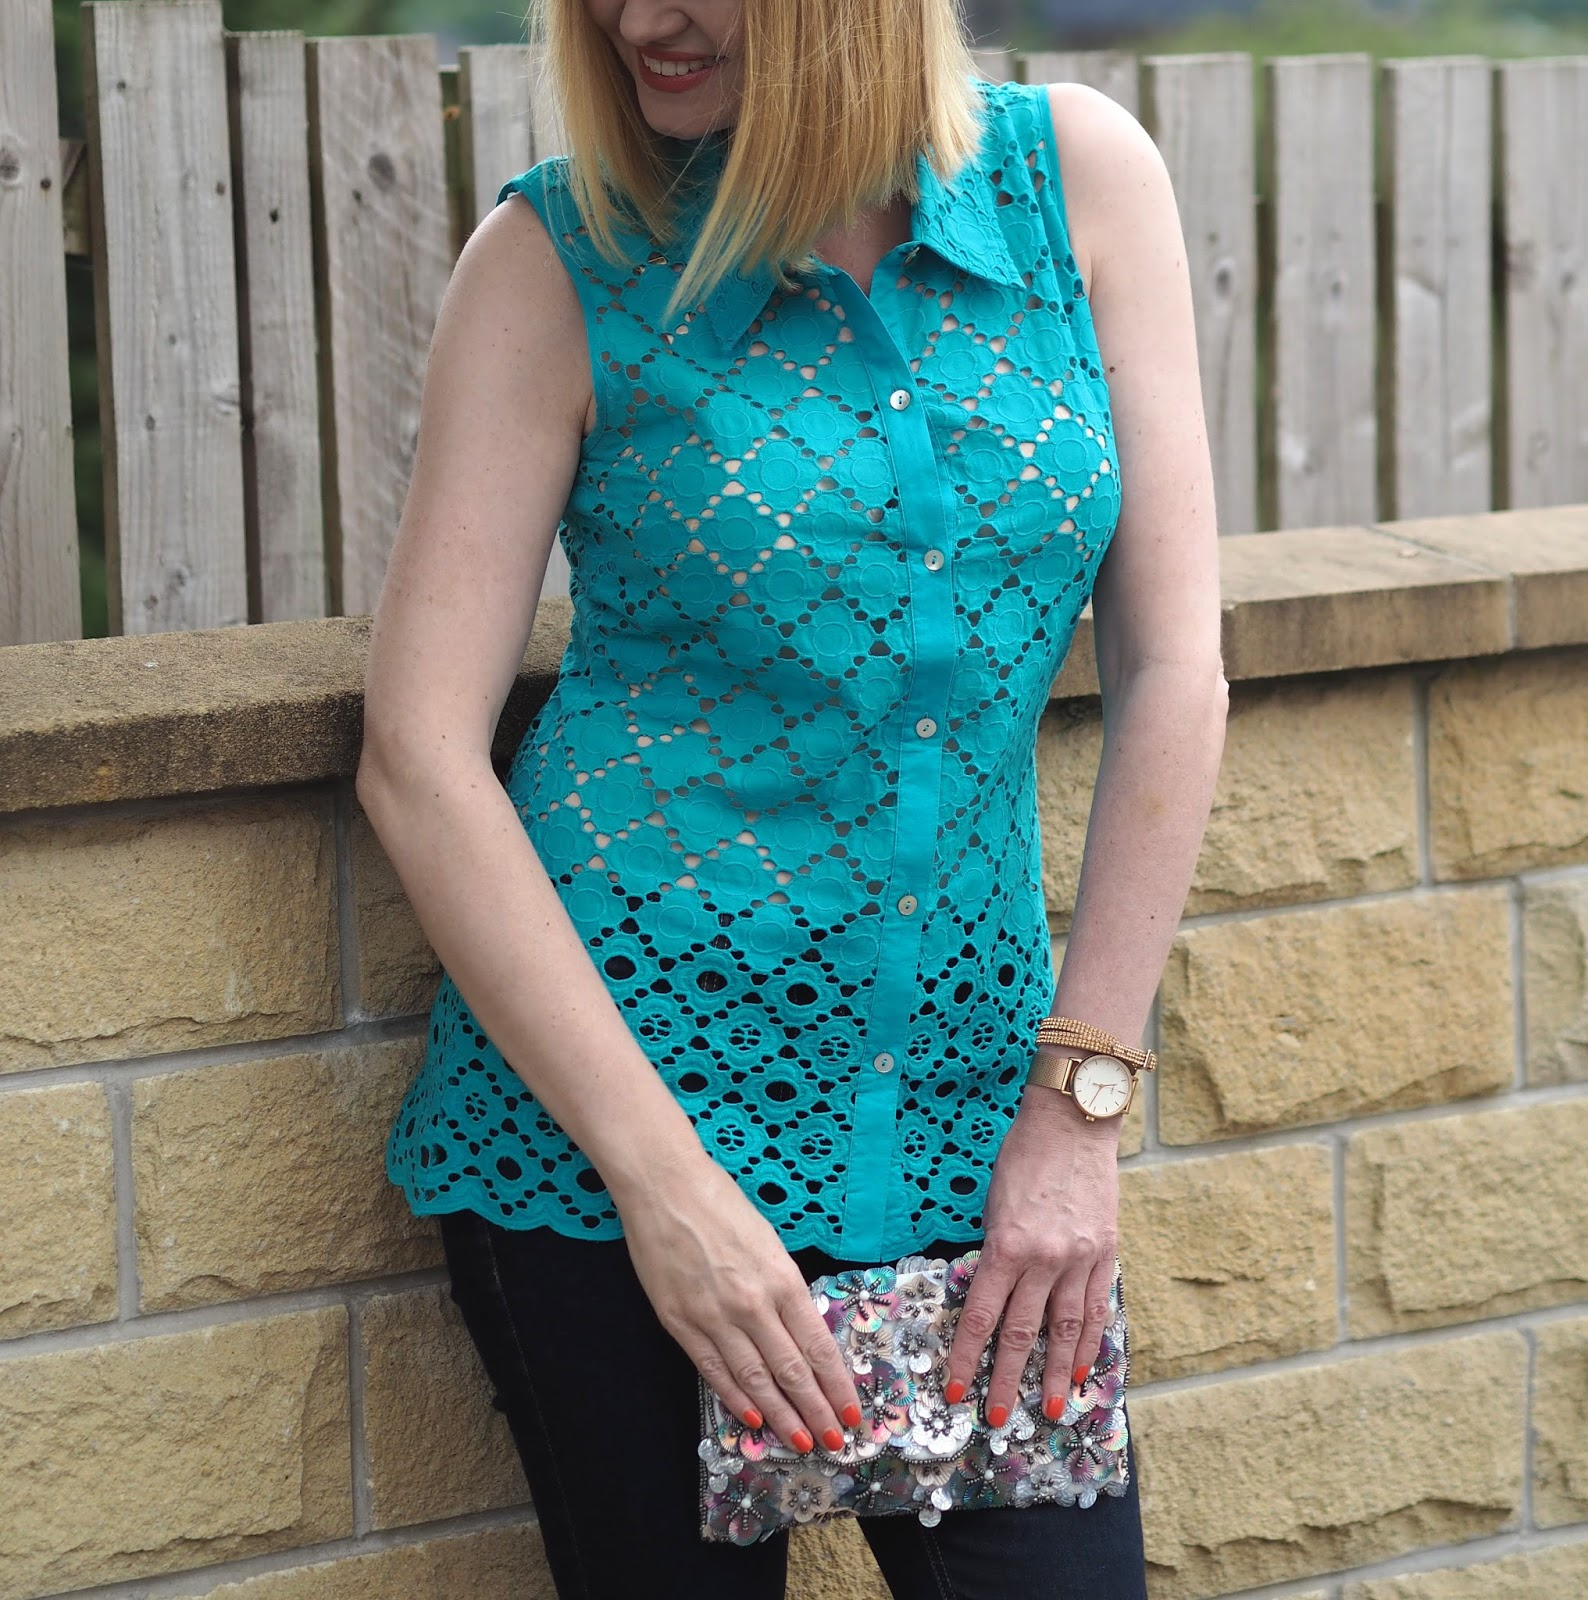 Turquoise broderie anglais blouse top with skinny jeans and wedge shoes